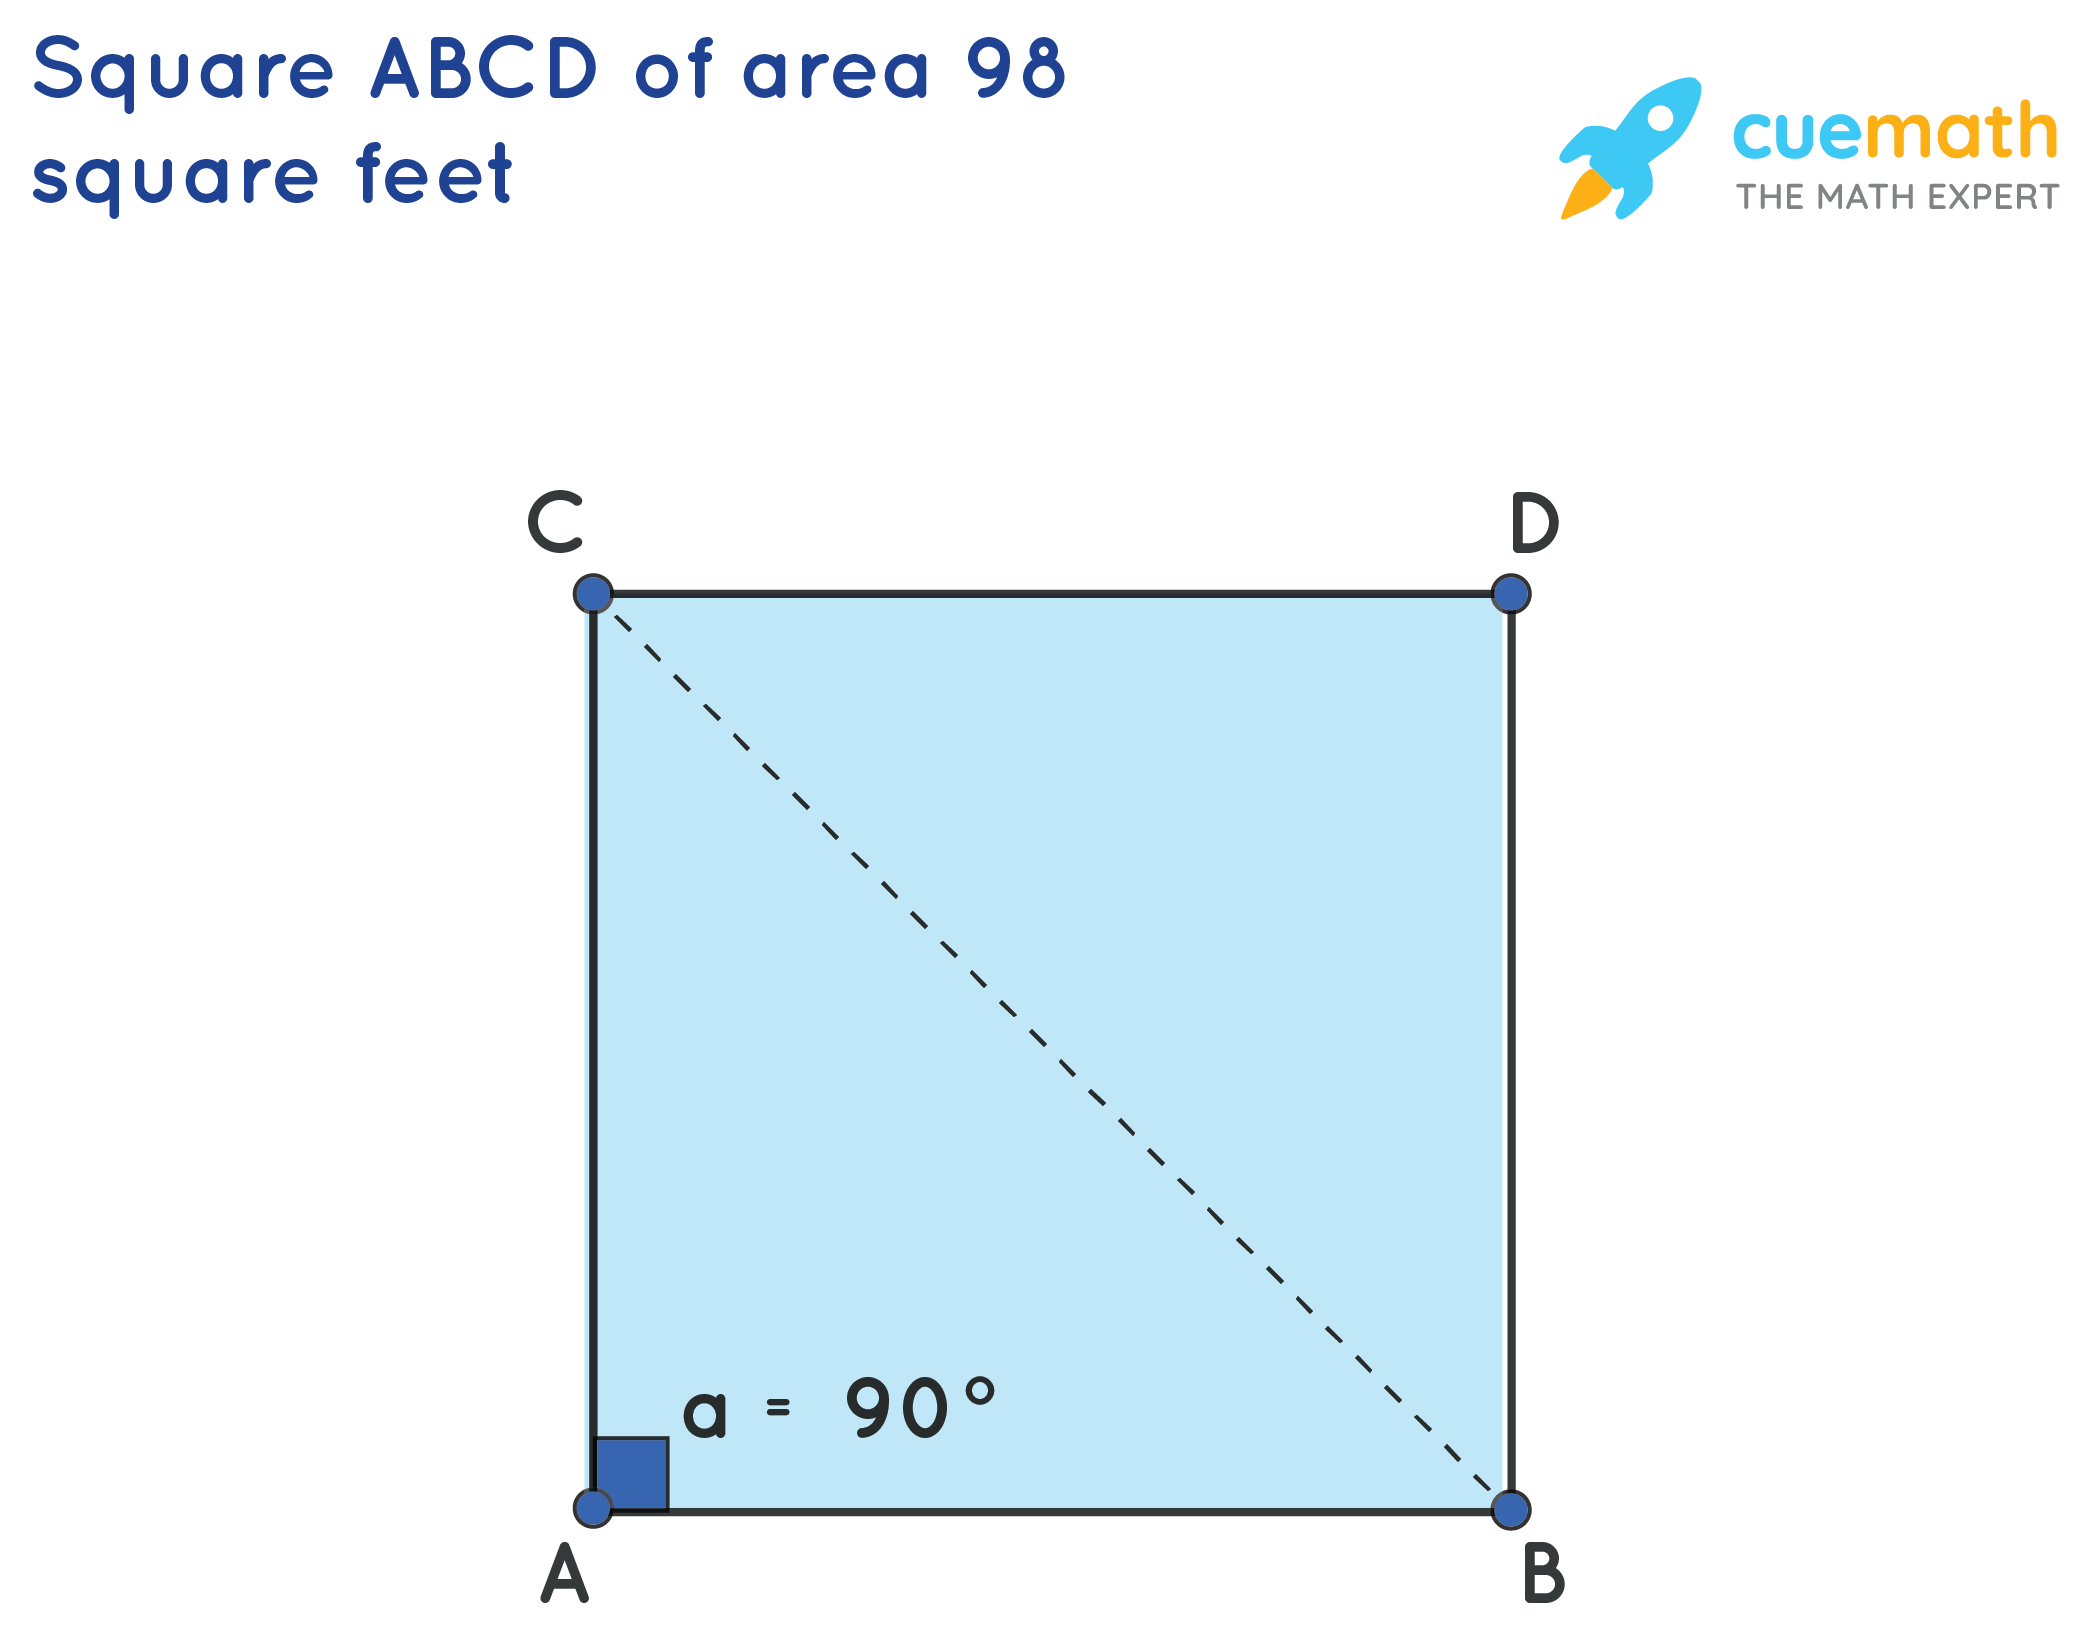 SquareABCD of area 98 square feet